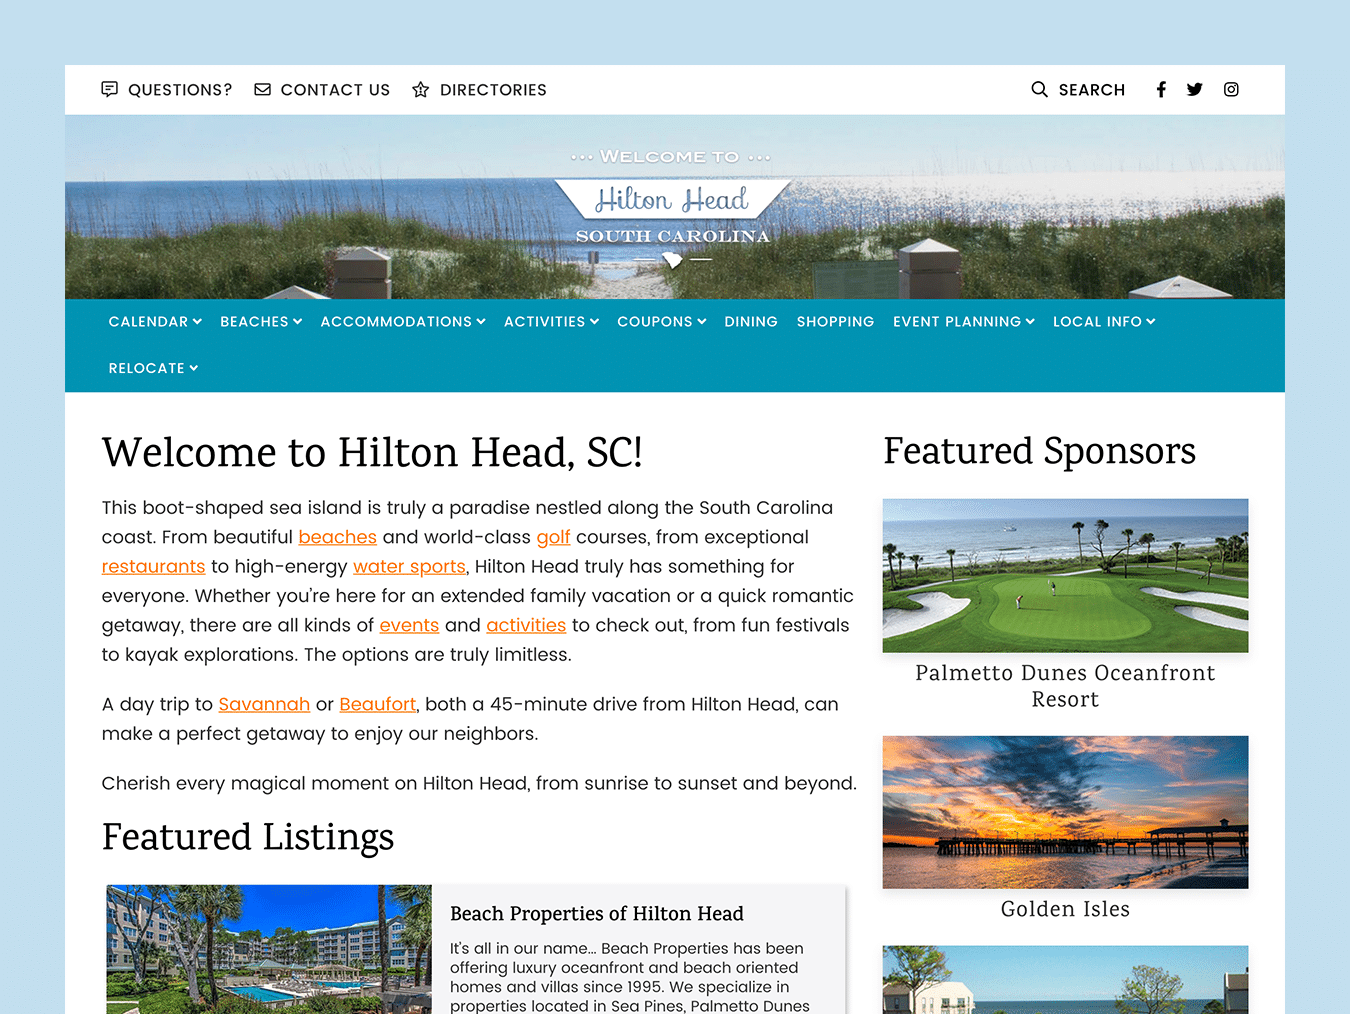 hiltonhead-web-design-featured